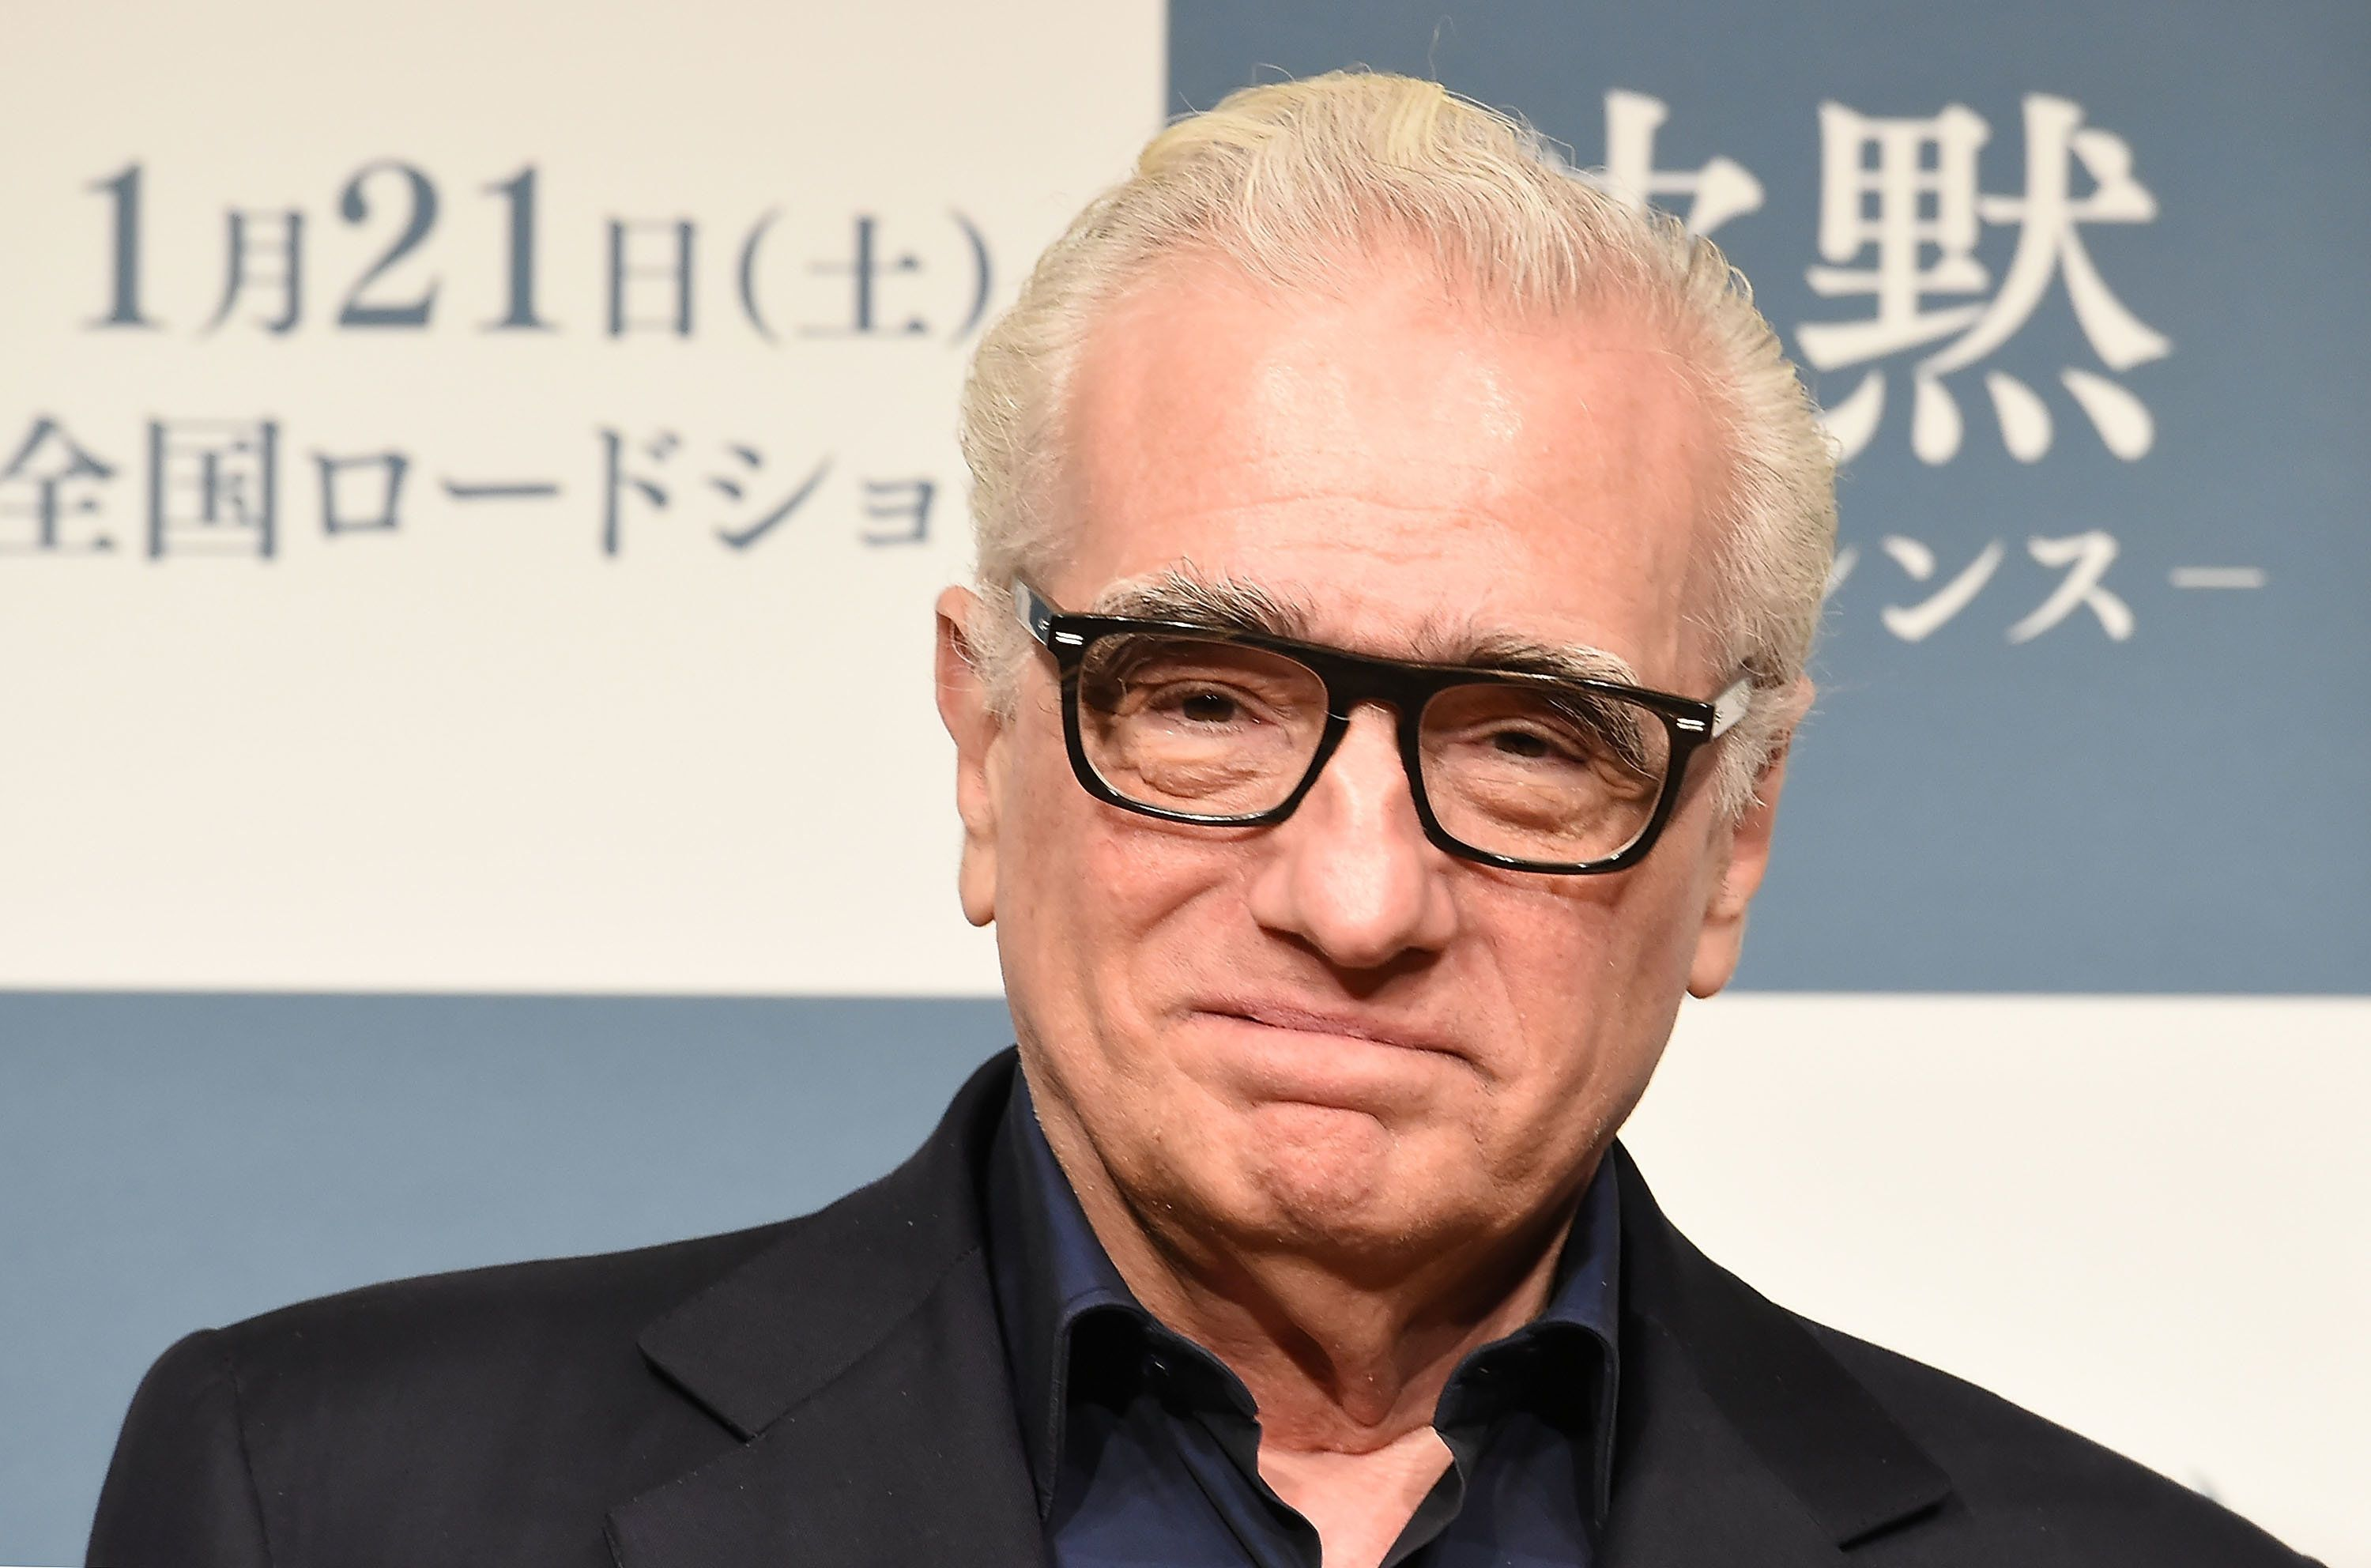 TOKYO, JAPAN - JANUARY 16:  Director Martin Scorsese attends the press conference for 'Silence' at the Ritz-Carlton on January 16, 2017 in Tokyo, Japan.  (Photo by Jun Sato/WireImage)